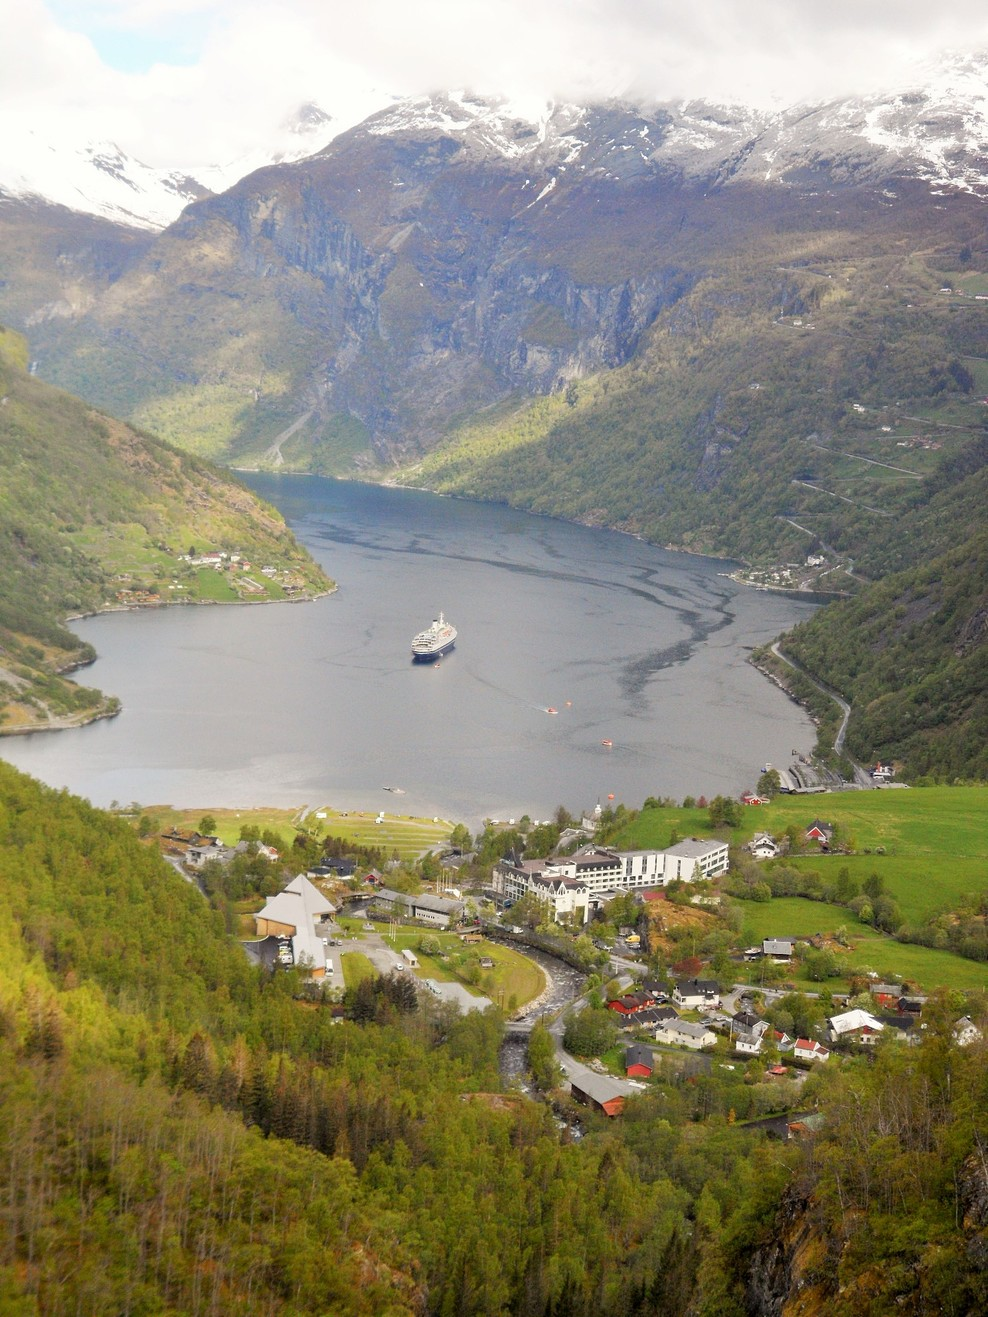 Geiranger Fjord looking down on the village of Geiranger with Marco Polo anchored just offshore.